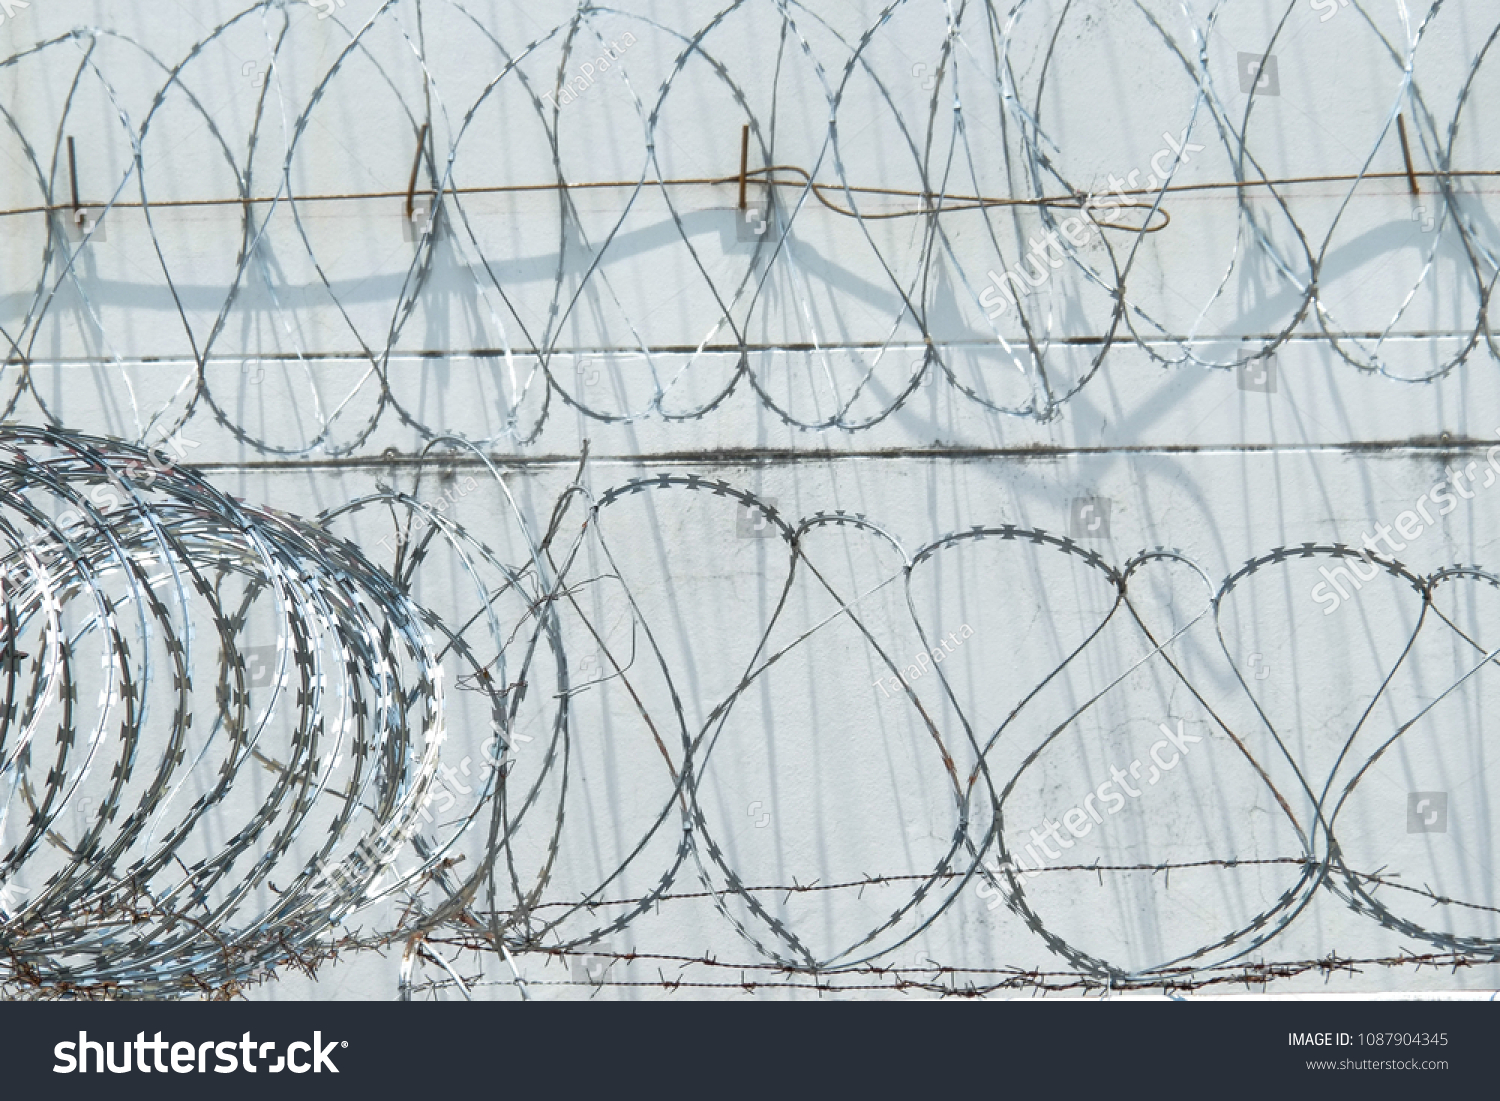 Spiral Razor Wire Fence Barbed Wire Stock Photo (Edit Now ...